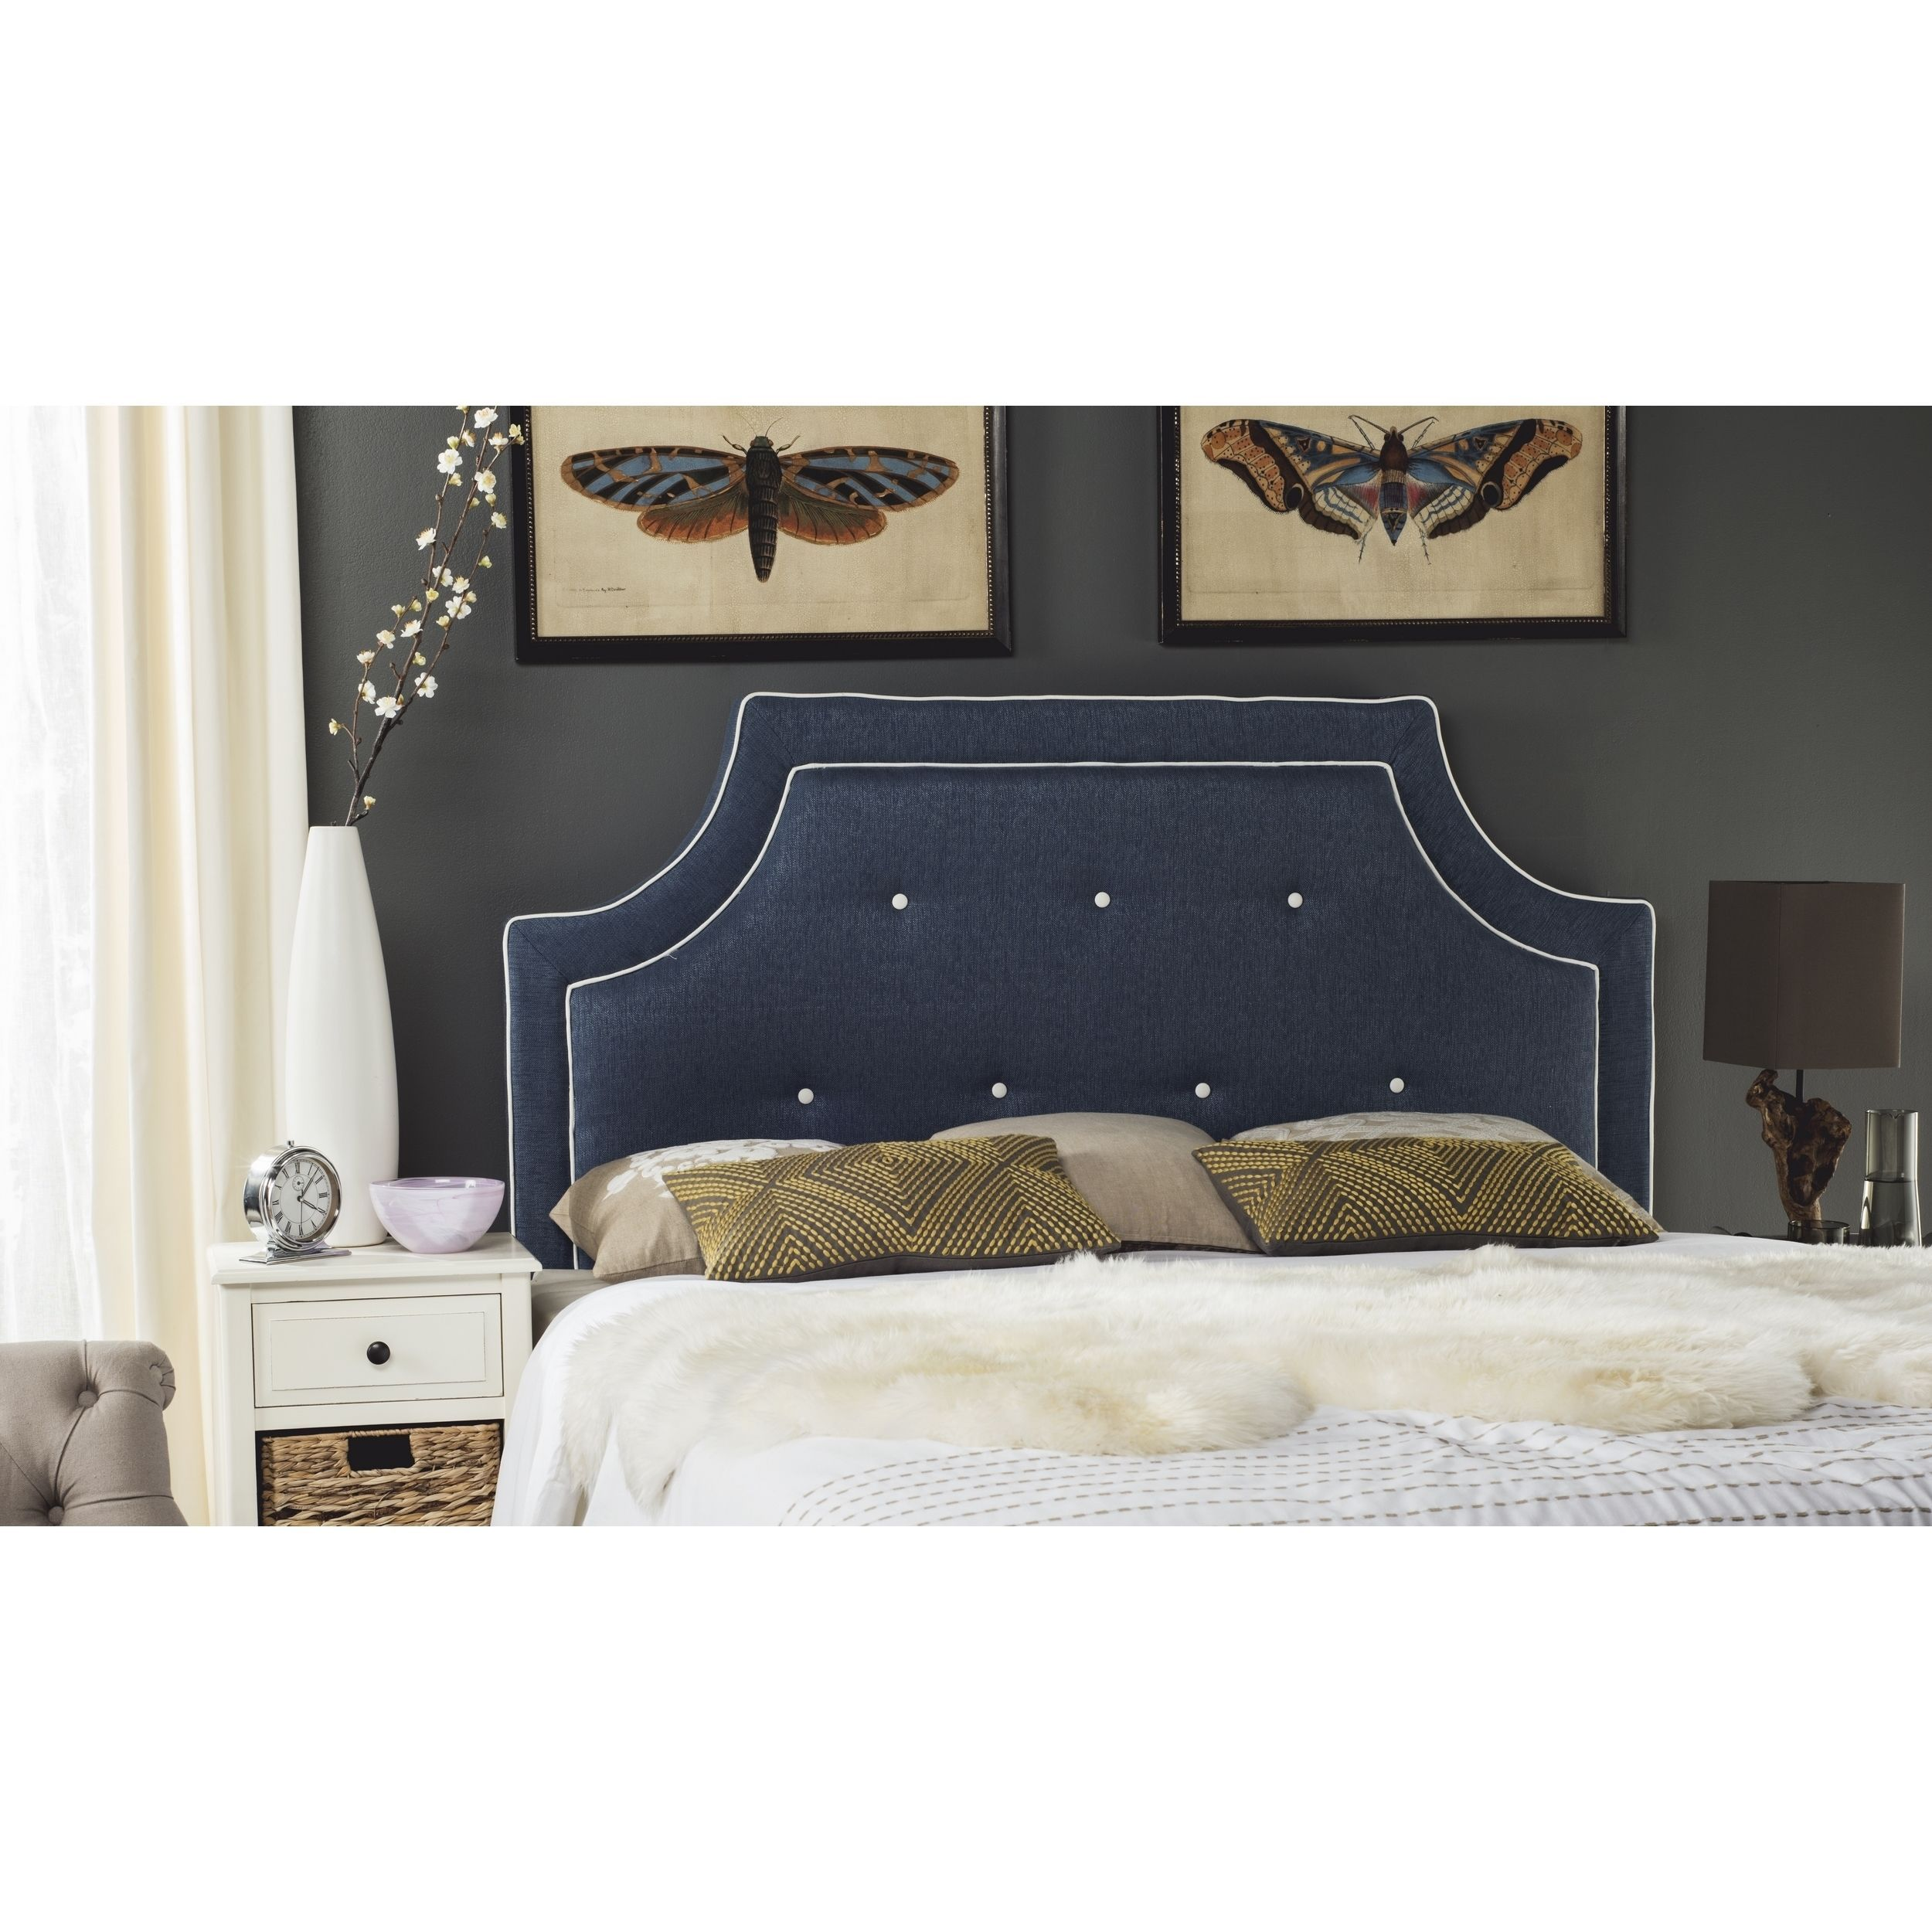 Safavieh Tallulah Denim Blue and White Piping Upholstered Arched Headboard  (Queen) (MCR4045D-Q), Black